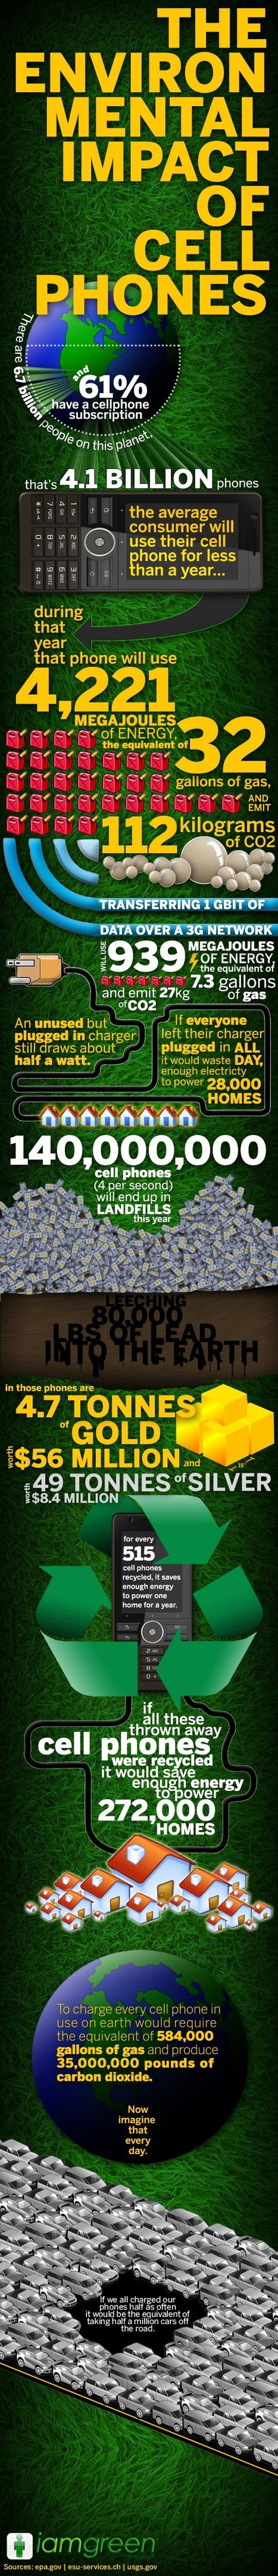 The Environmental Impact Of Cell Phones | Visual.ly | Education & Numérique | Scoop.it